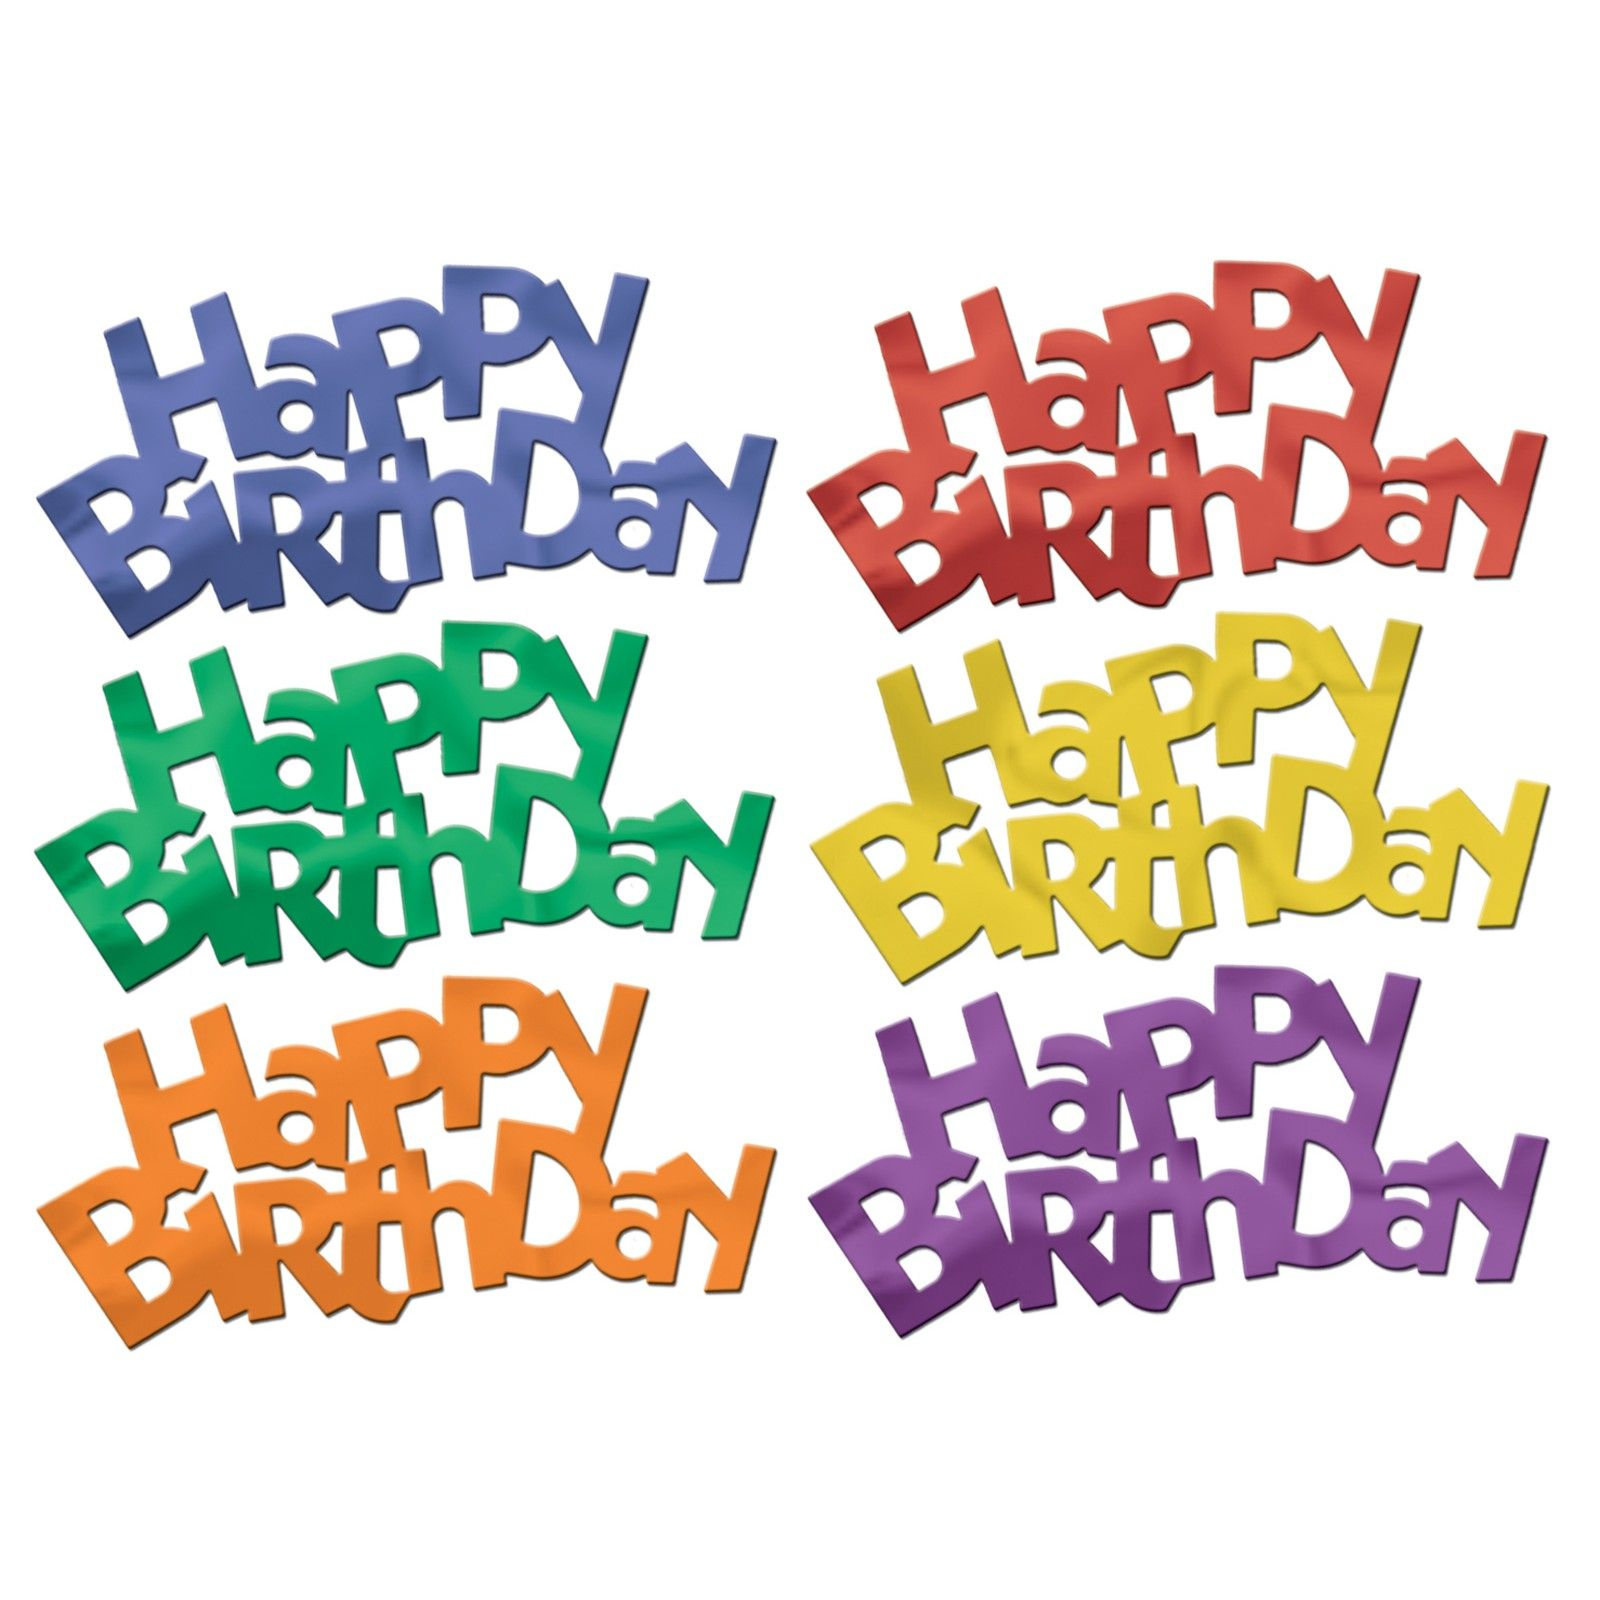 Happy Birthday Wallpapers,Pics, Images For Facebook